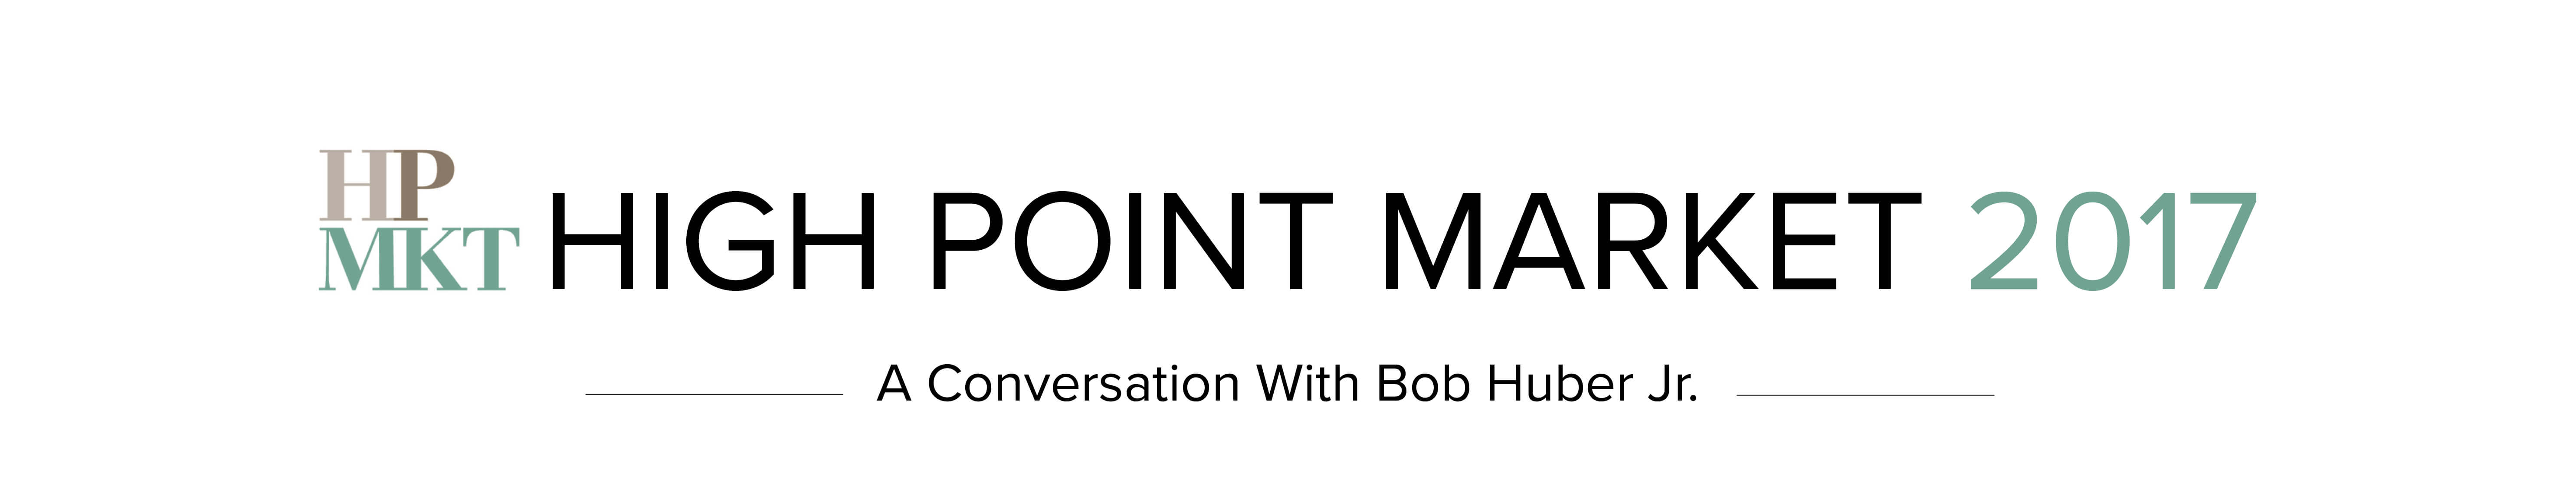 High Point Market - A conversation with Bob Huber